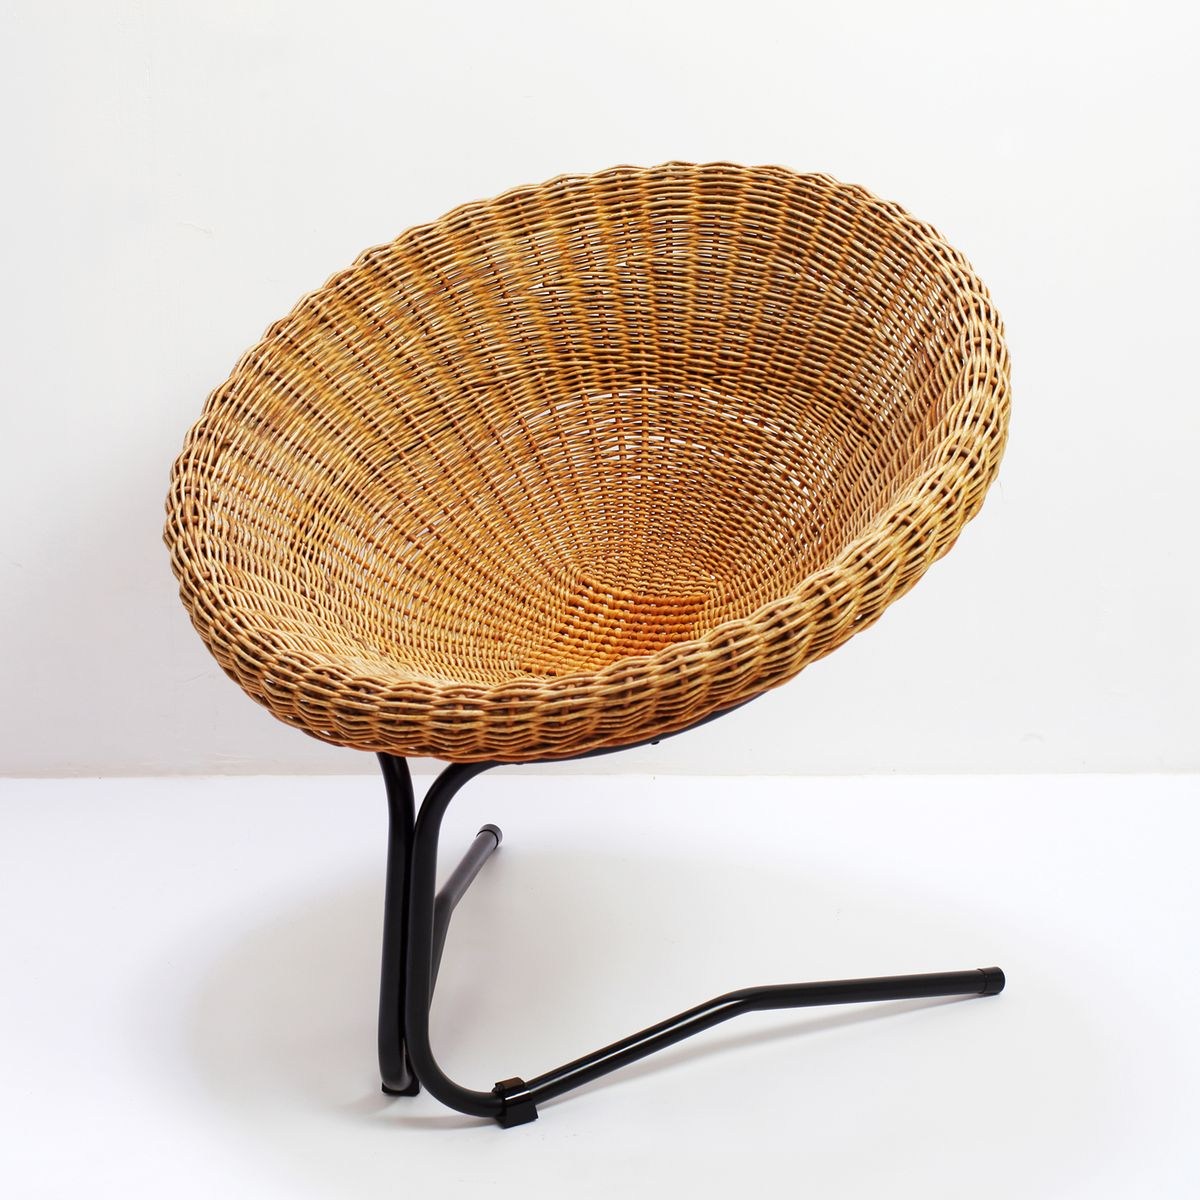 rattan lounge chair by arnold bueno de mesquita for roh noordwolde 1950s for sale at pamono. Black Bedroom Furniture Sets. Home Design Ideas